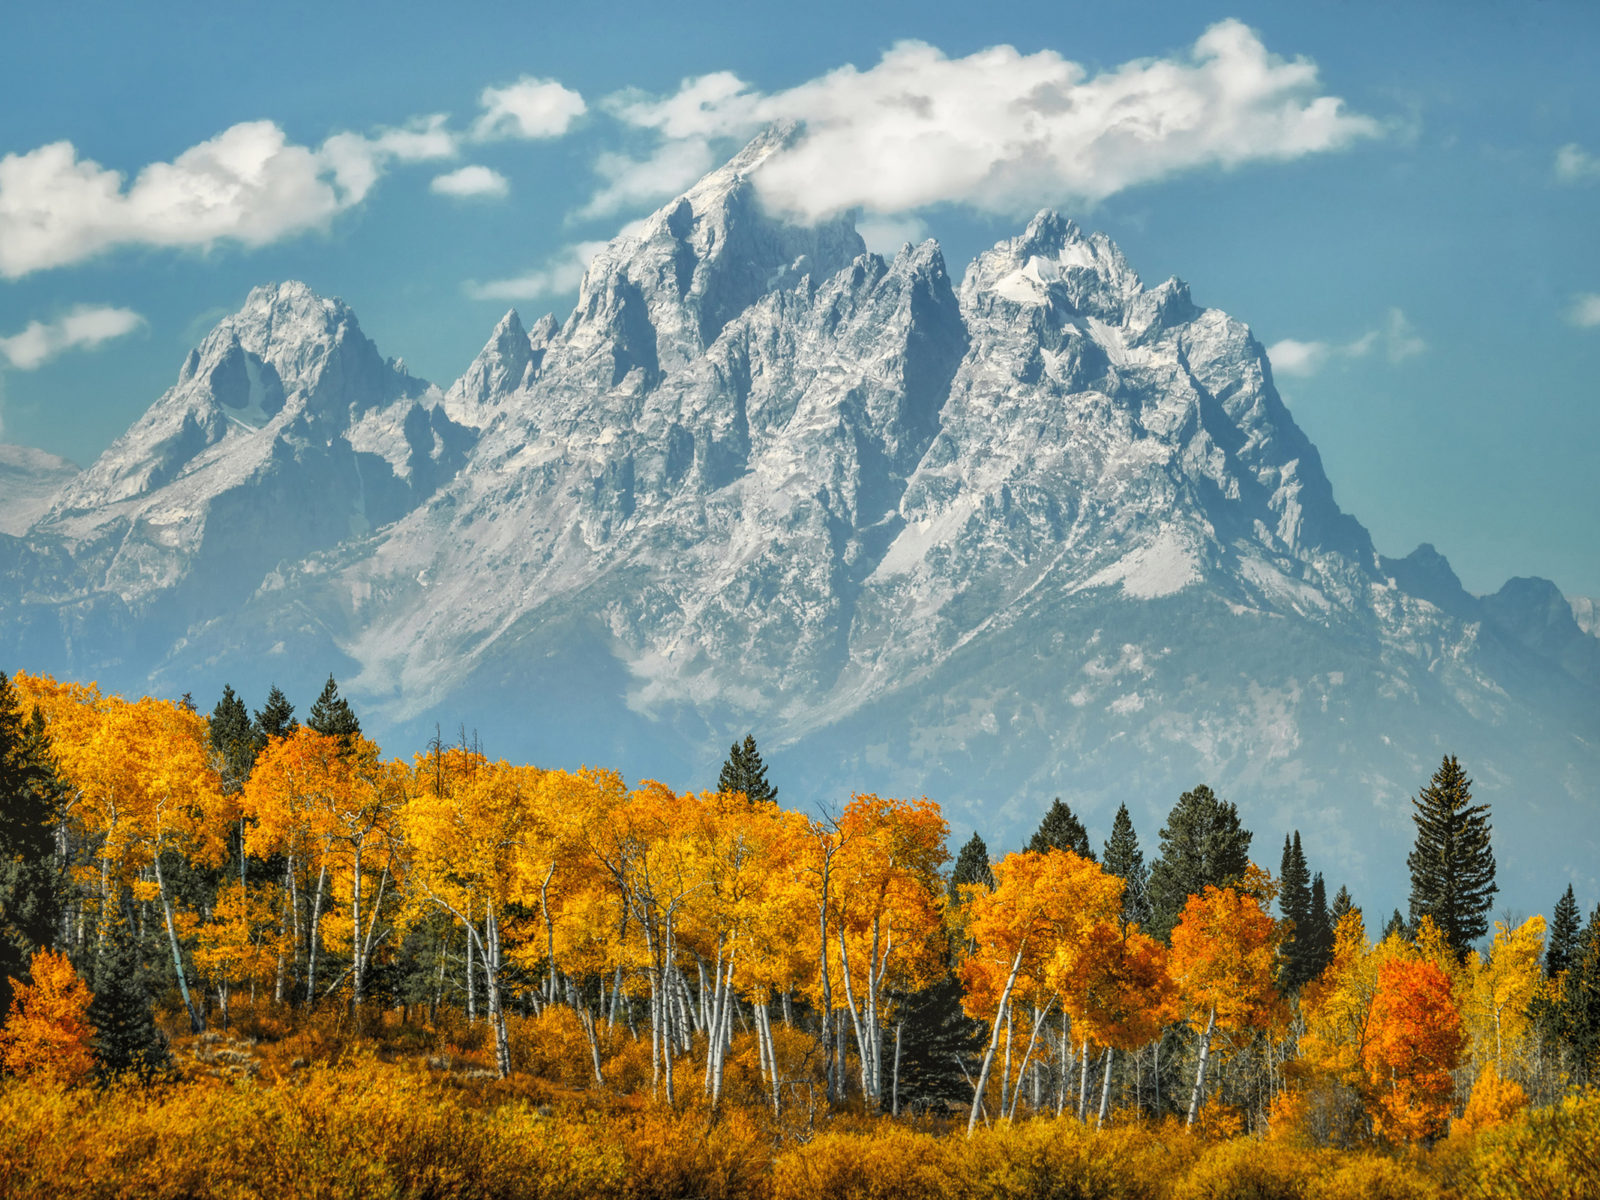 Beach Fall Wallpaper Aspen Forest In Fall Colors Snow Mount Moran Mountain In